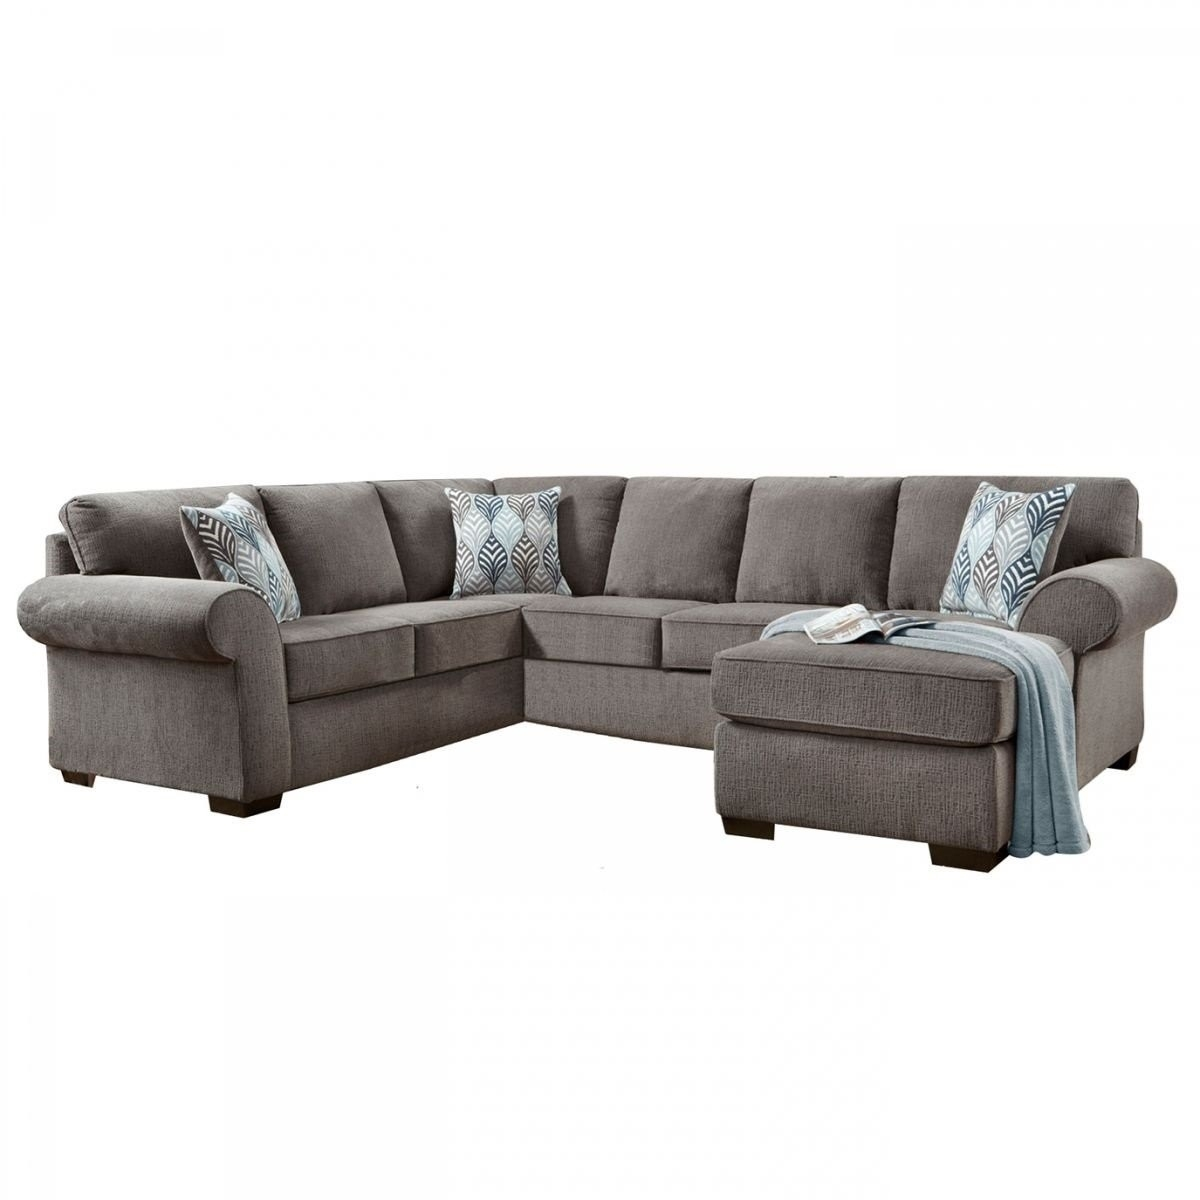 Grey Sectional Mcdade Graphite 2 Piece W Raf Chaise Living Spaces With Regard To Mcdade Graphite 2 Piece Sectionals With Raf Chaise (Image 8 of 25)